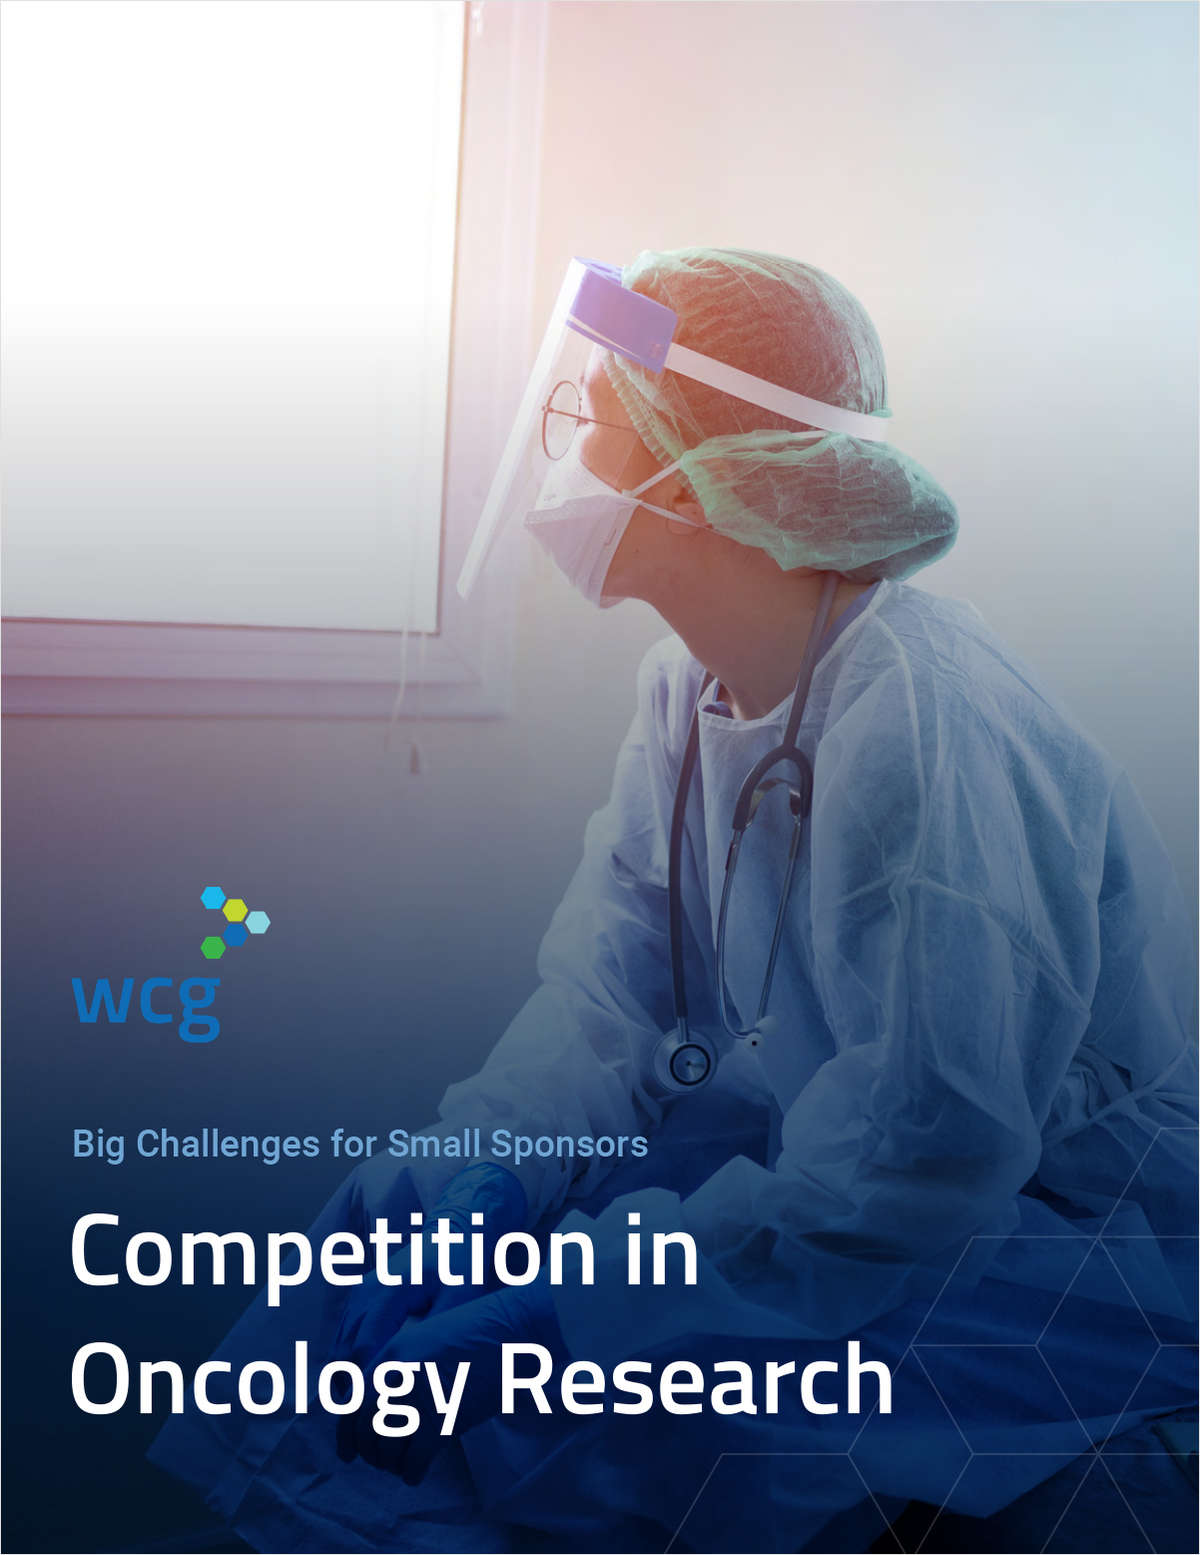 Big Challenges for Small Sponsors: Competition in Oncology Research